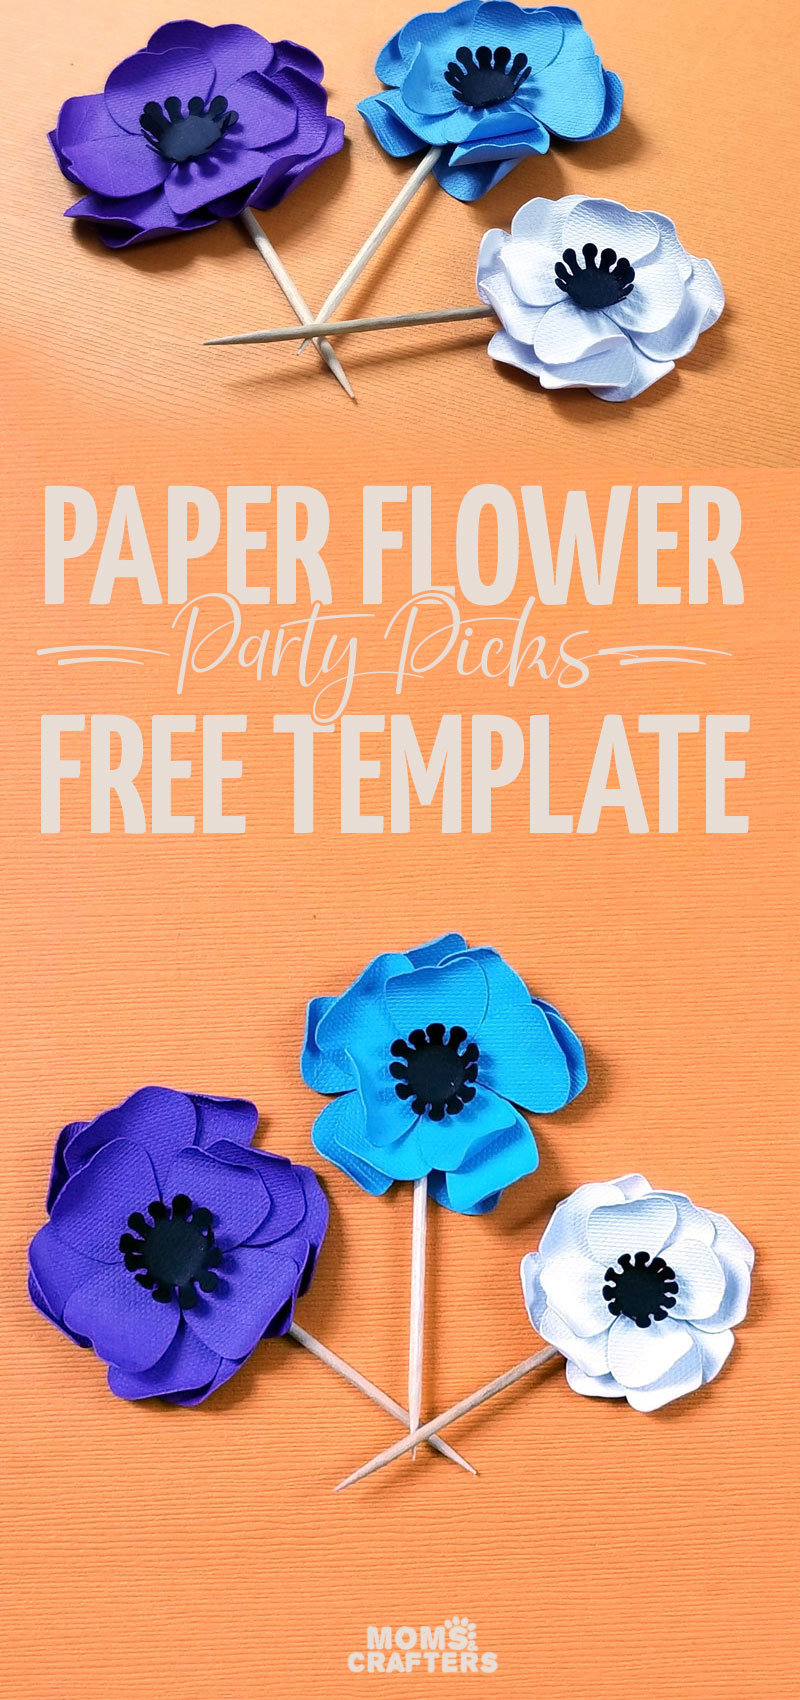 Click to download the FREE svg template to make these beautiful paper flower cupcake topper party picks using a Cricut Explore Air 2! It's my favorite Spring craft idea and a perfect card stock or paper Cricut craft for beginners